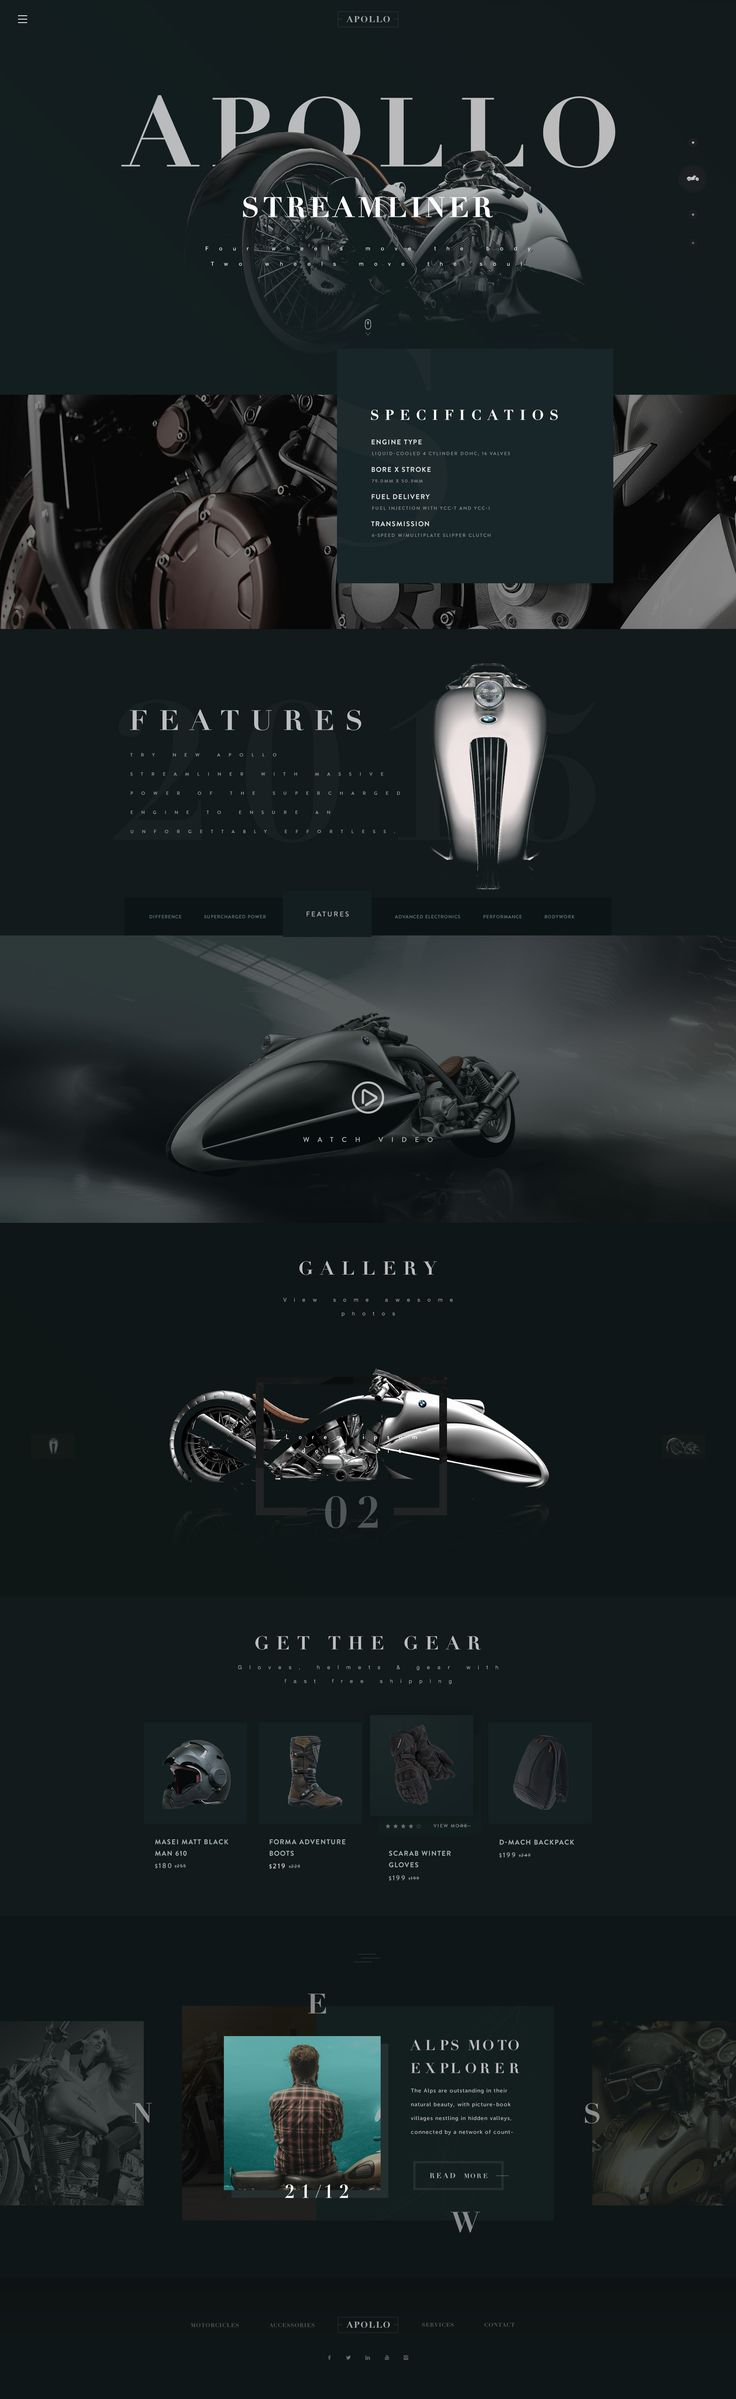 APOLLO by Nick Buturishvili.  Futuristic motorcycle website design concept